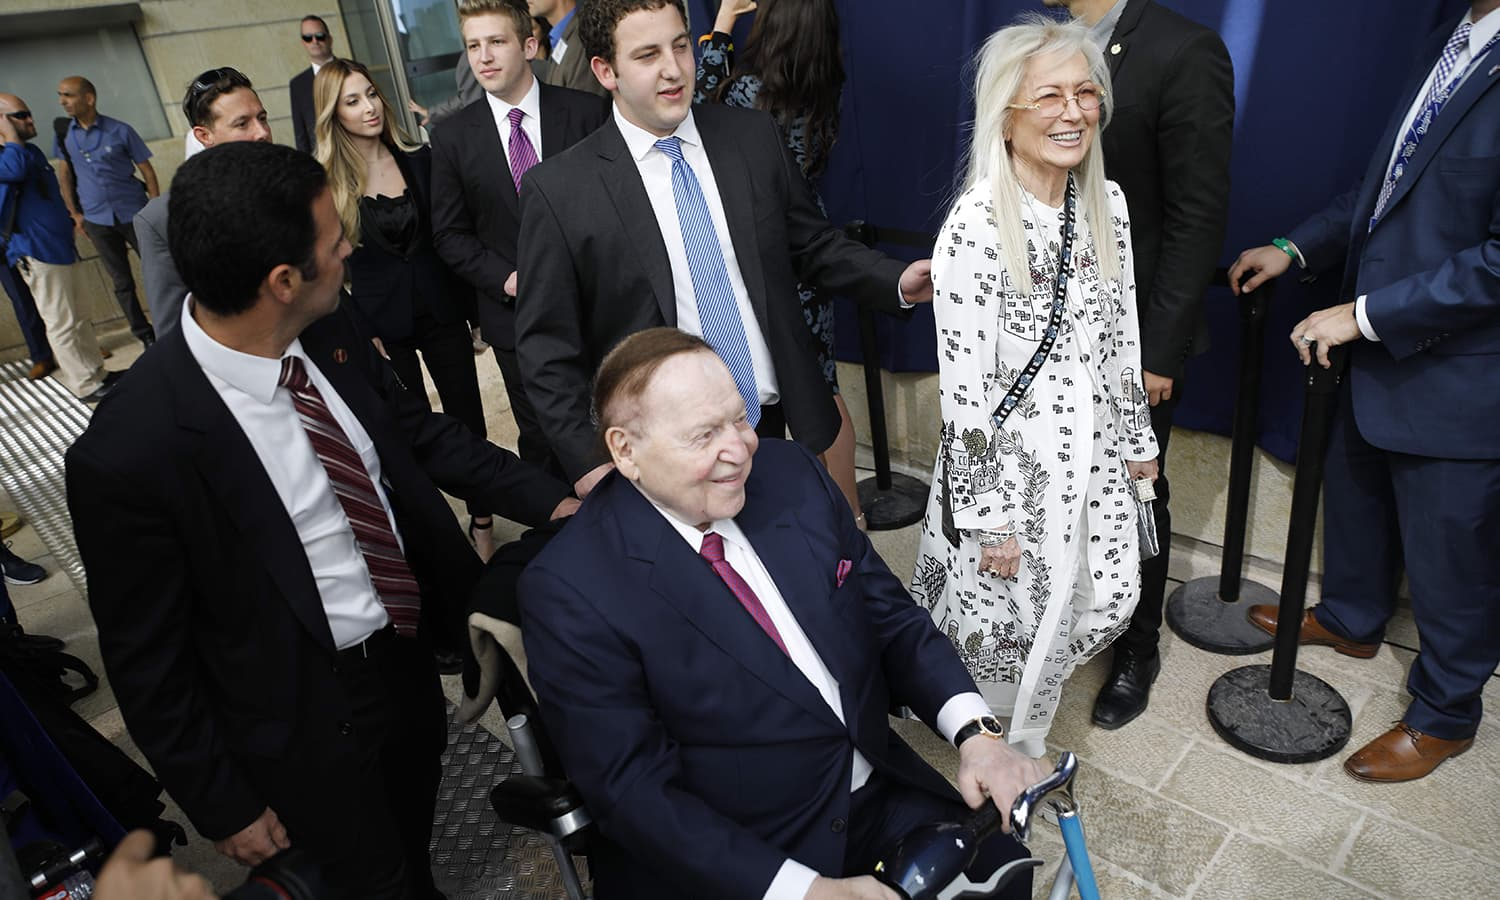 Chairman and chief executive officer of the Las Vegas Sands Corporation Sheldon Adelson (C) and his wife Miriam Ochsorn (R) arrive ahead of the inauguration of the US embassy in Jerusalem. — AFP